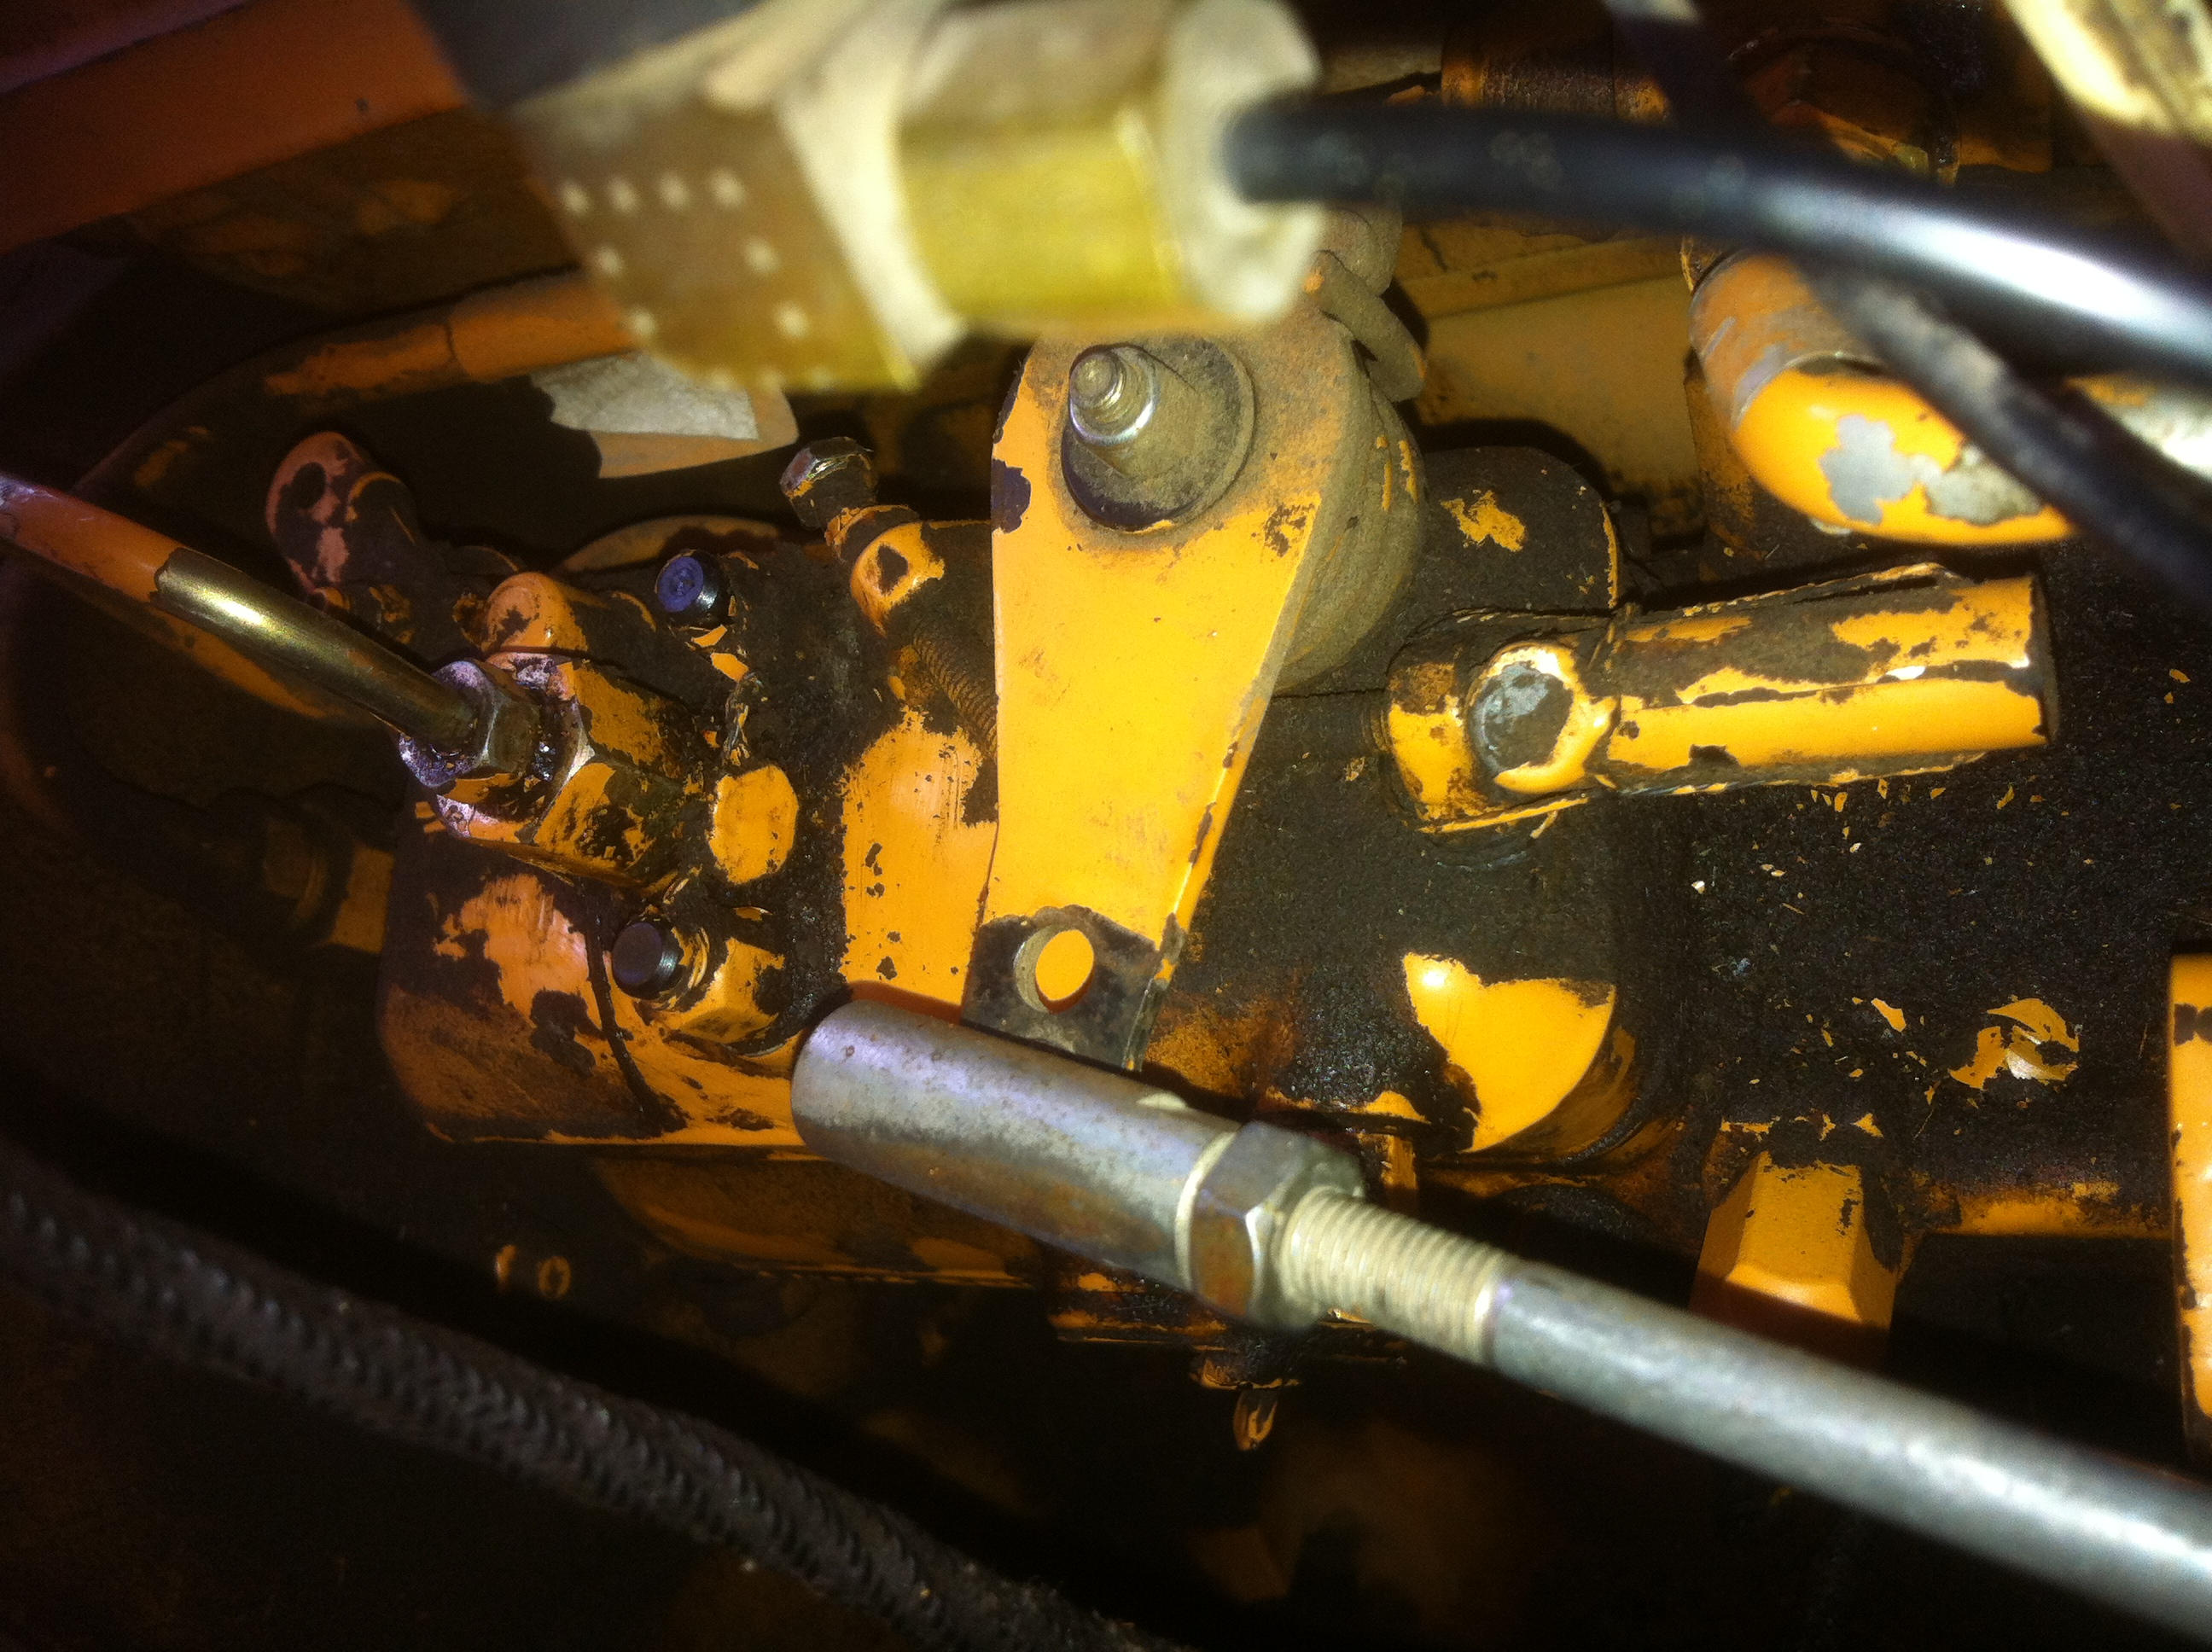 Fuel Injector Wire Diagram Control Wiring Honda Is There Just One Pump On A Case 1840 Skidsteer Lt1